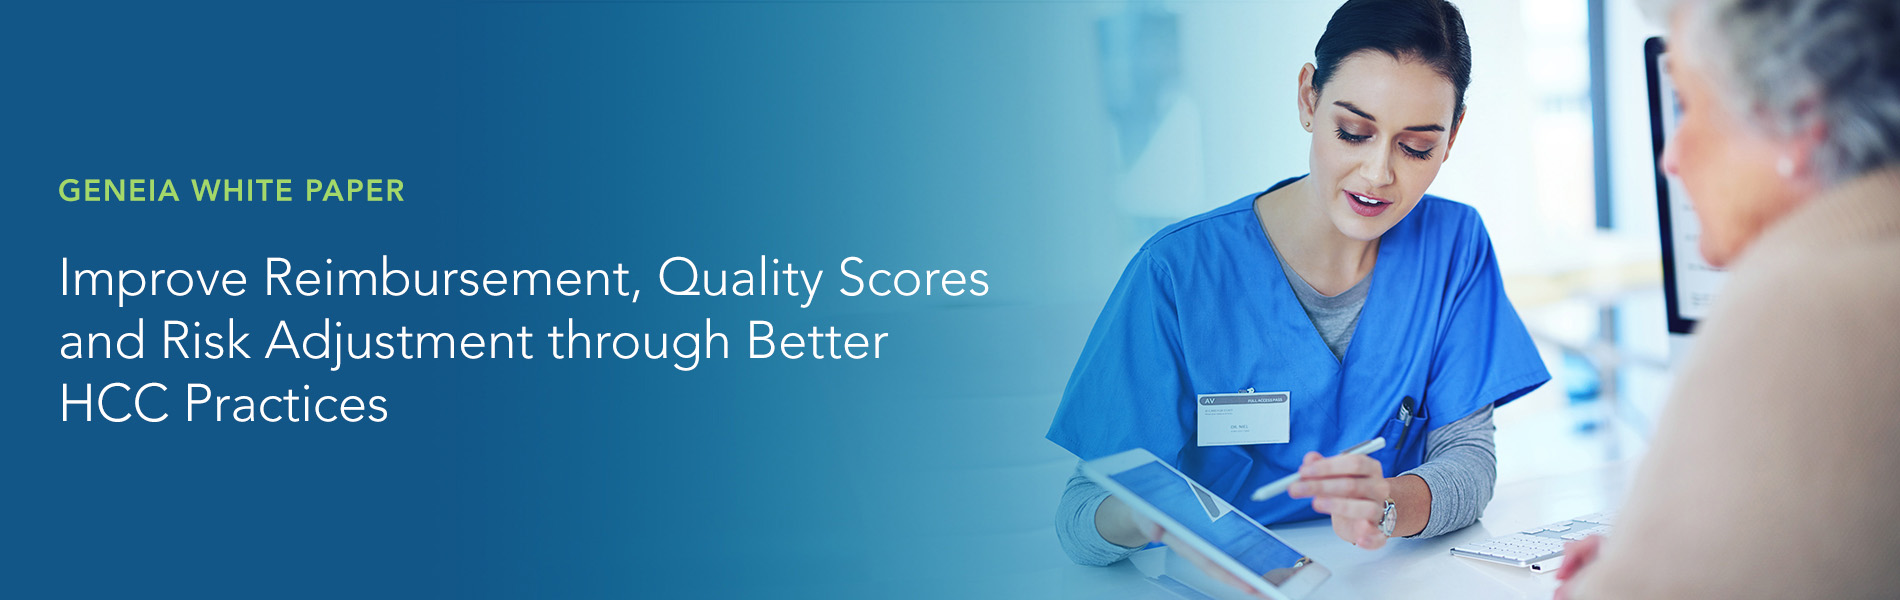 Banner with nurse talking to a client and text that reads: Improve Reimbursement, quality scores, and risk adjustment through better HCC practices.